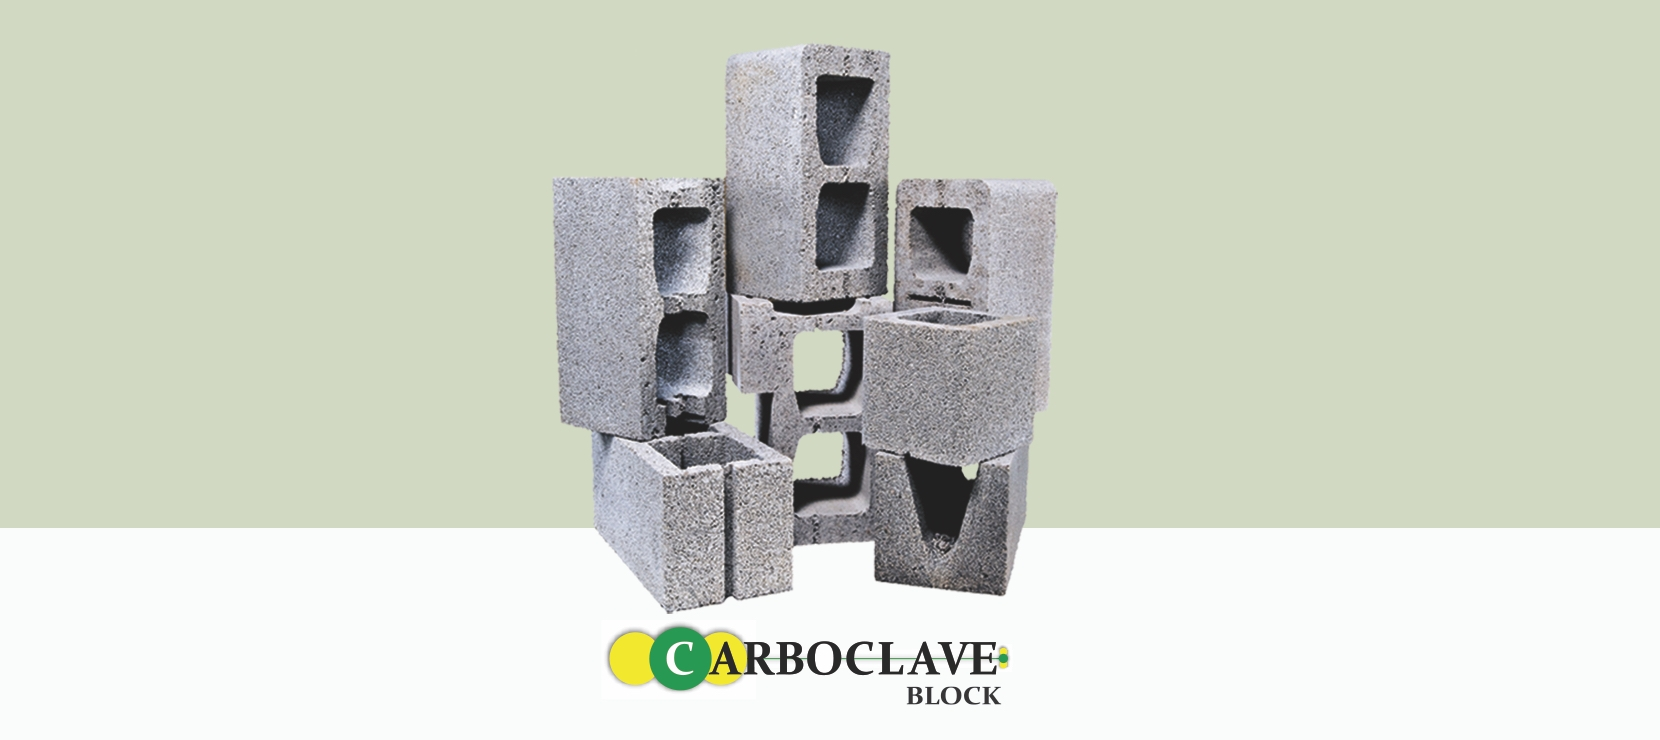 CarboClave block product from Brampton Brick